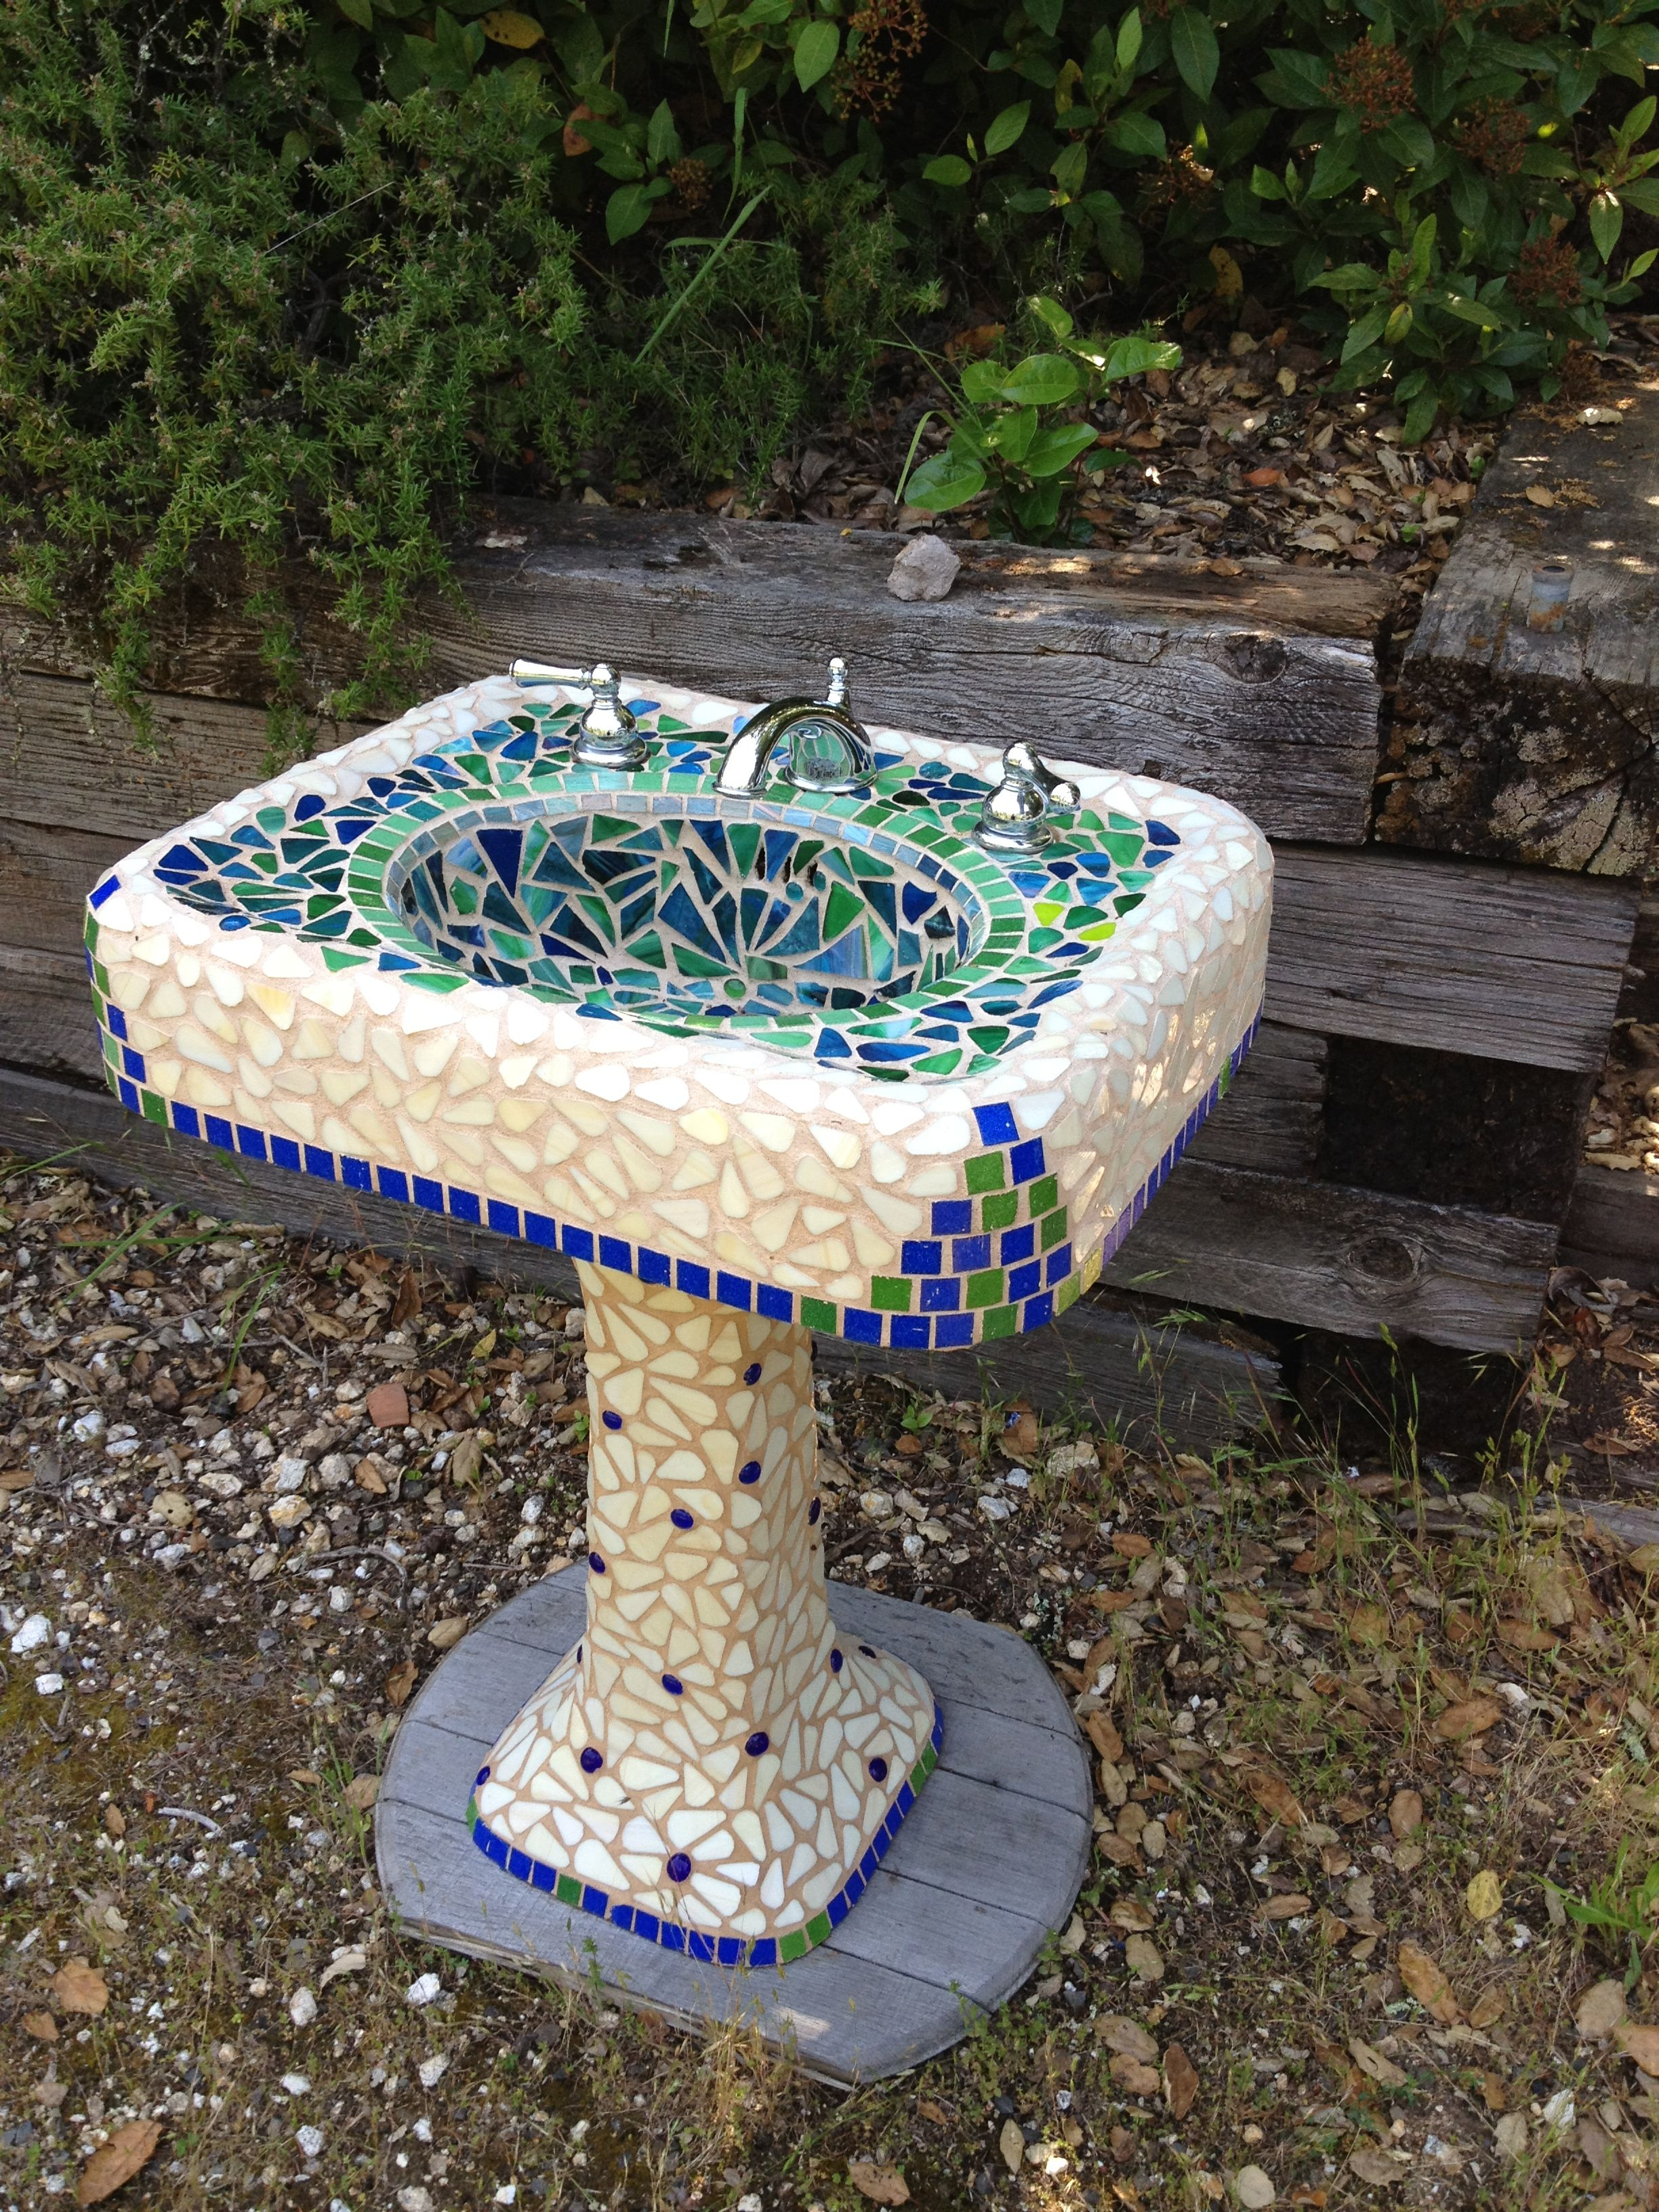 Mosaic sink made with stained glass and tile made by Susan Long